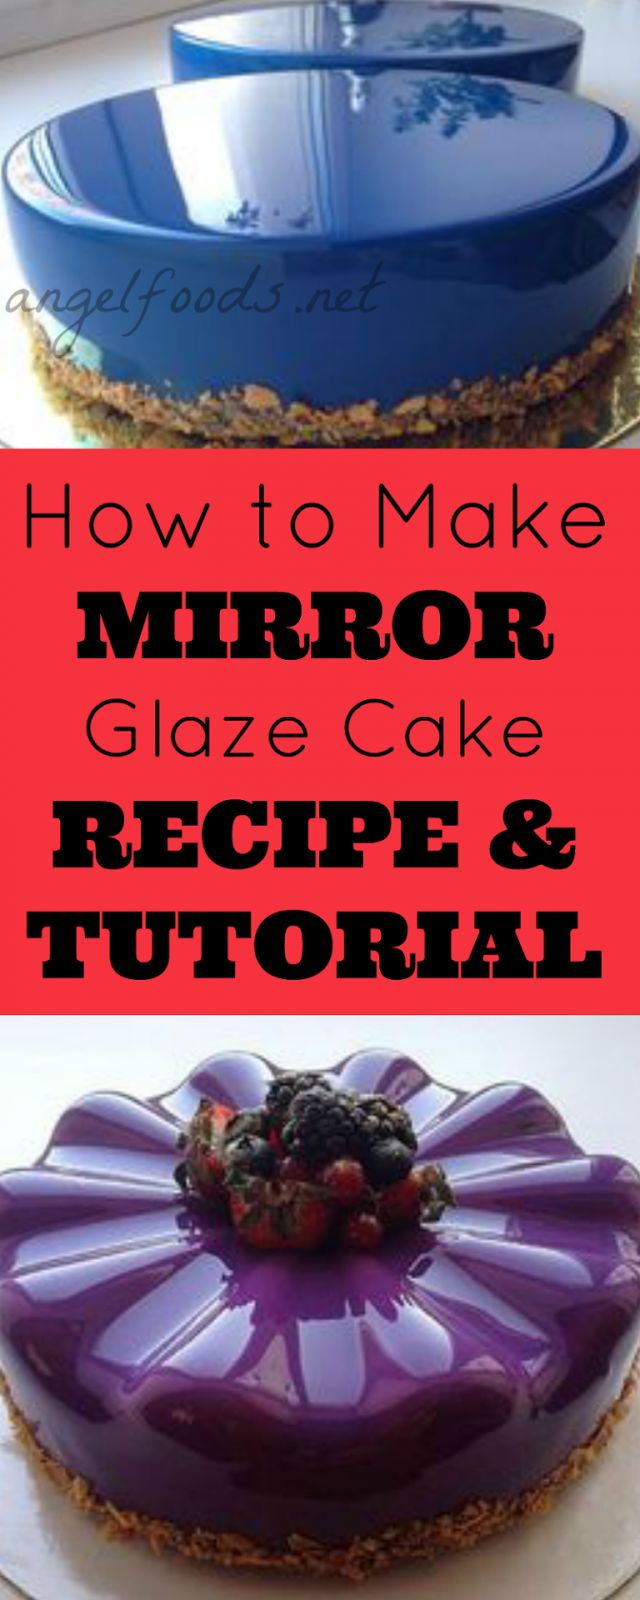 How to Make Mirror Glaze (Shiny) Cakes    Ingredients:   20 g Gelatin Powder,   120 g Water,   300 g Glucose,   300 g Sugar,   150 g ...